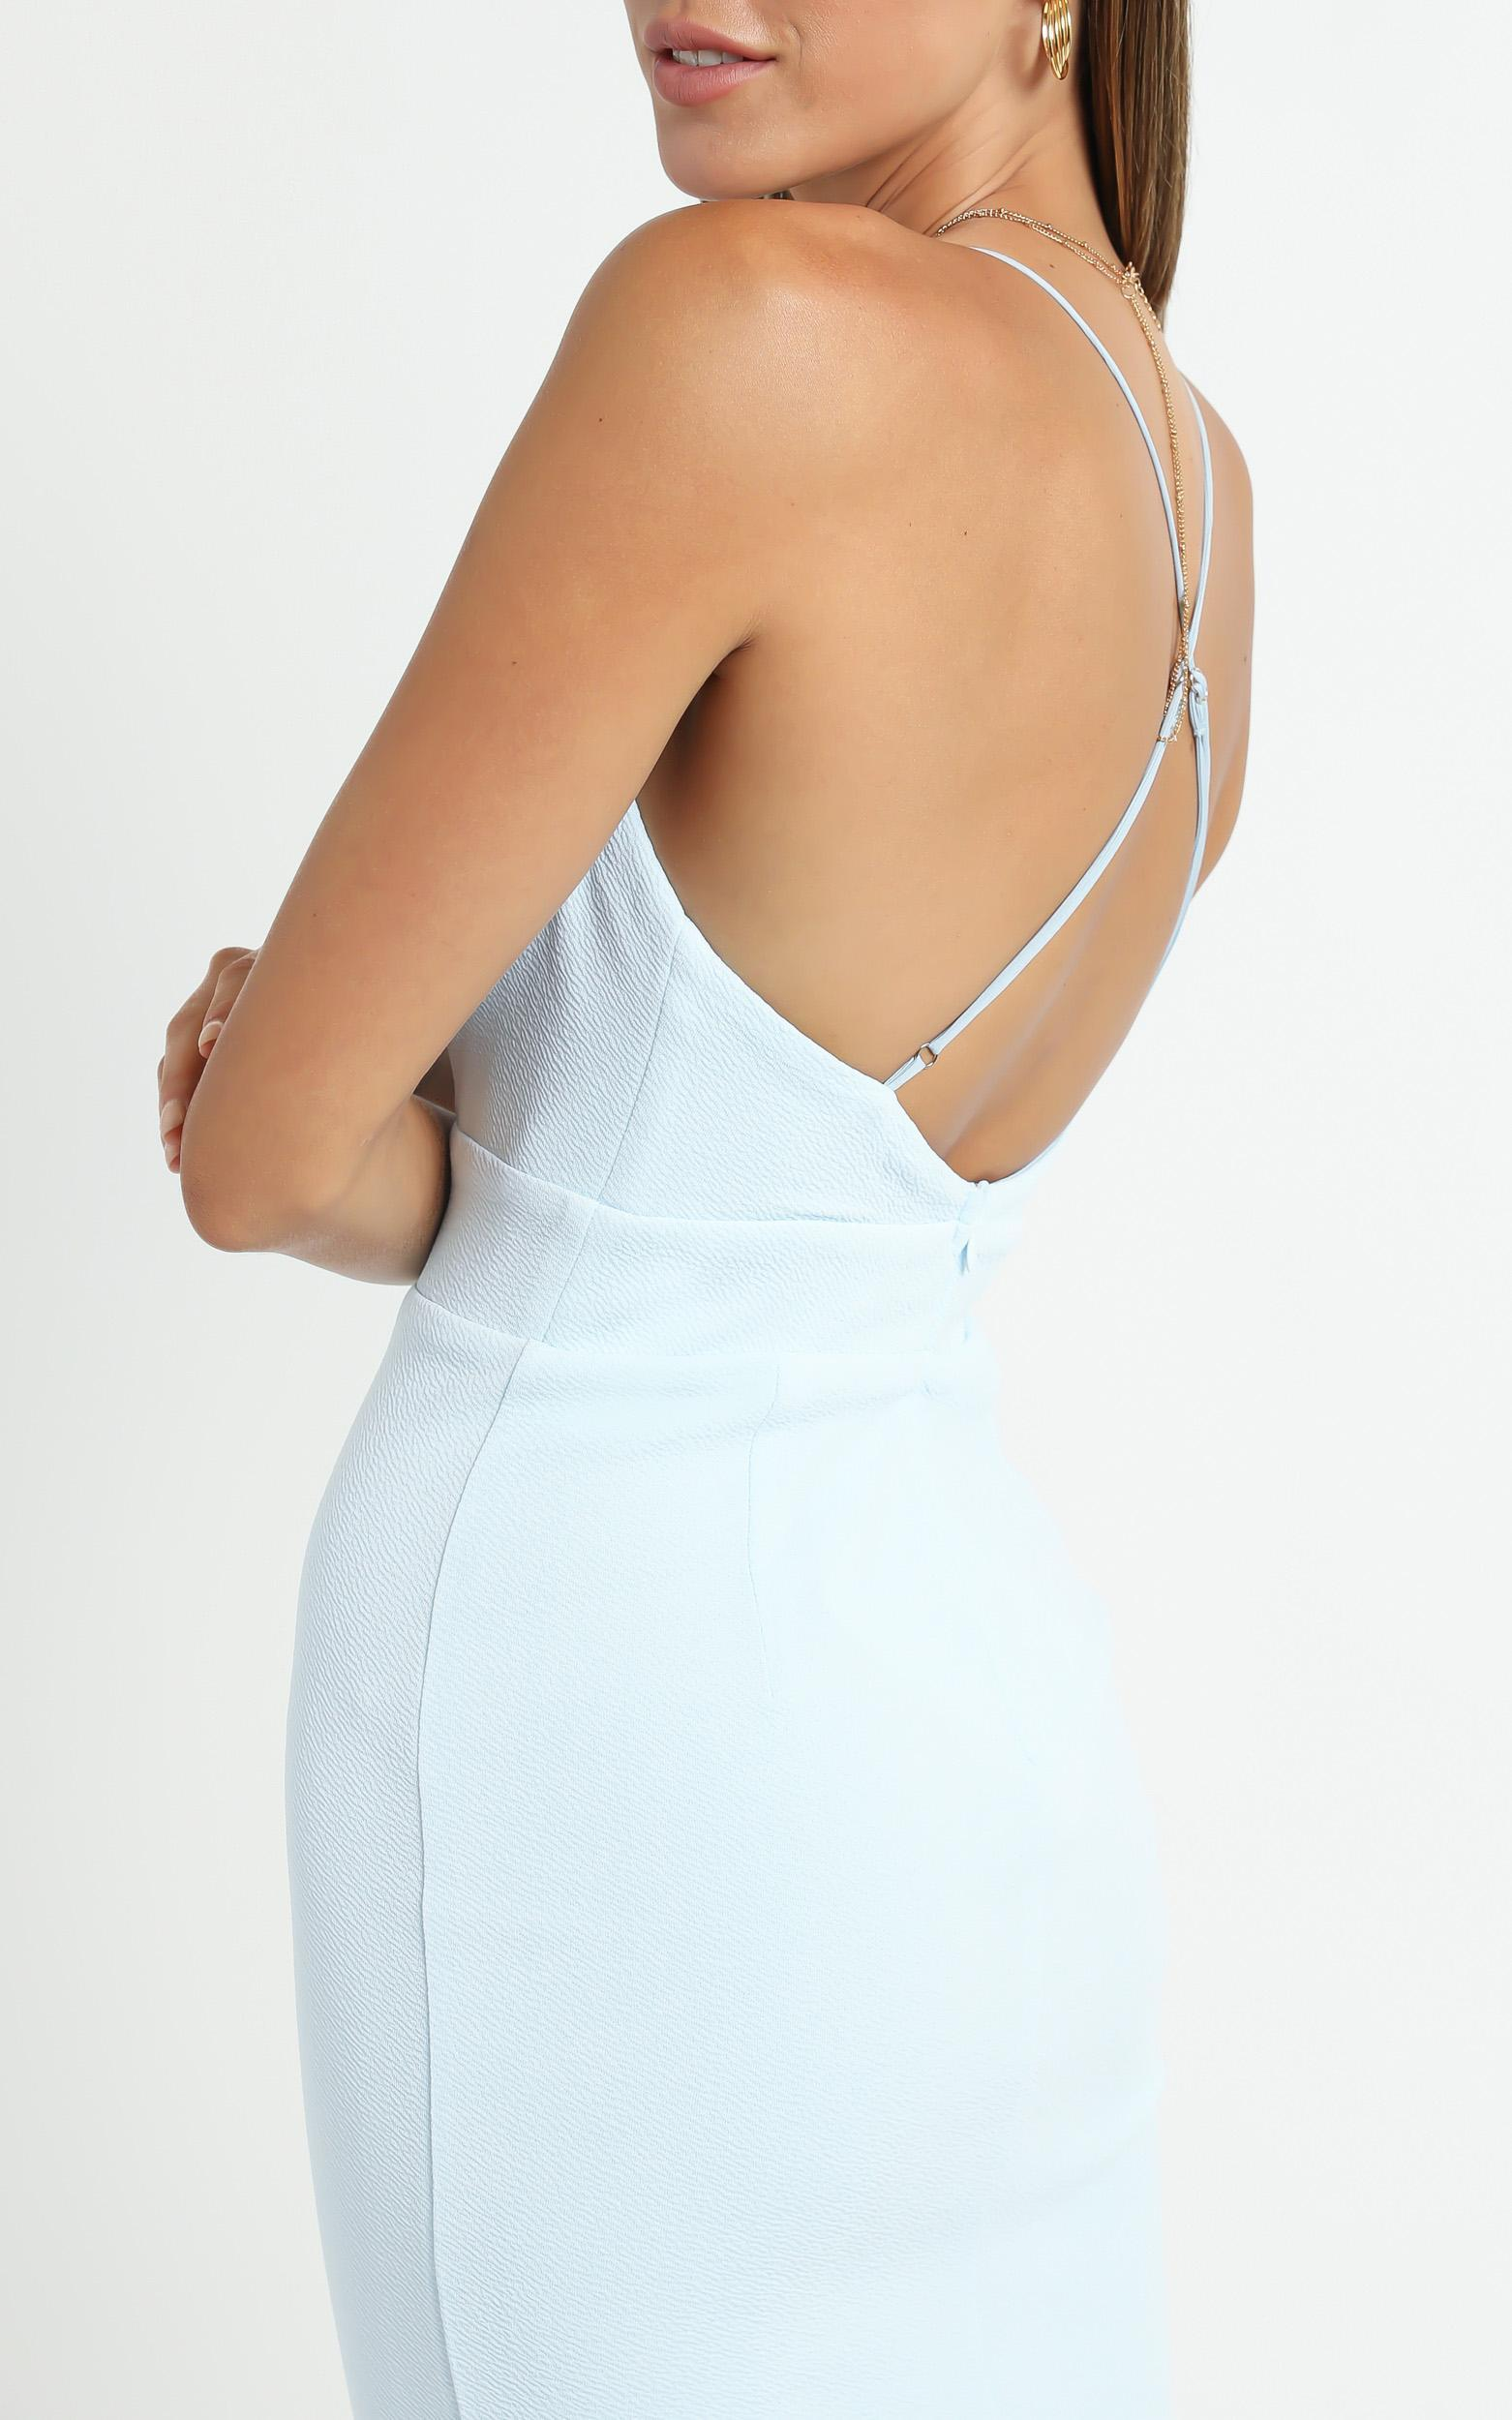 Lissa Midi Dress In Baby Blue - 6 (XS), BLU5, hi-res image number null